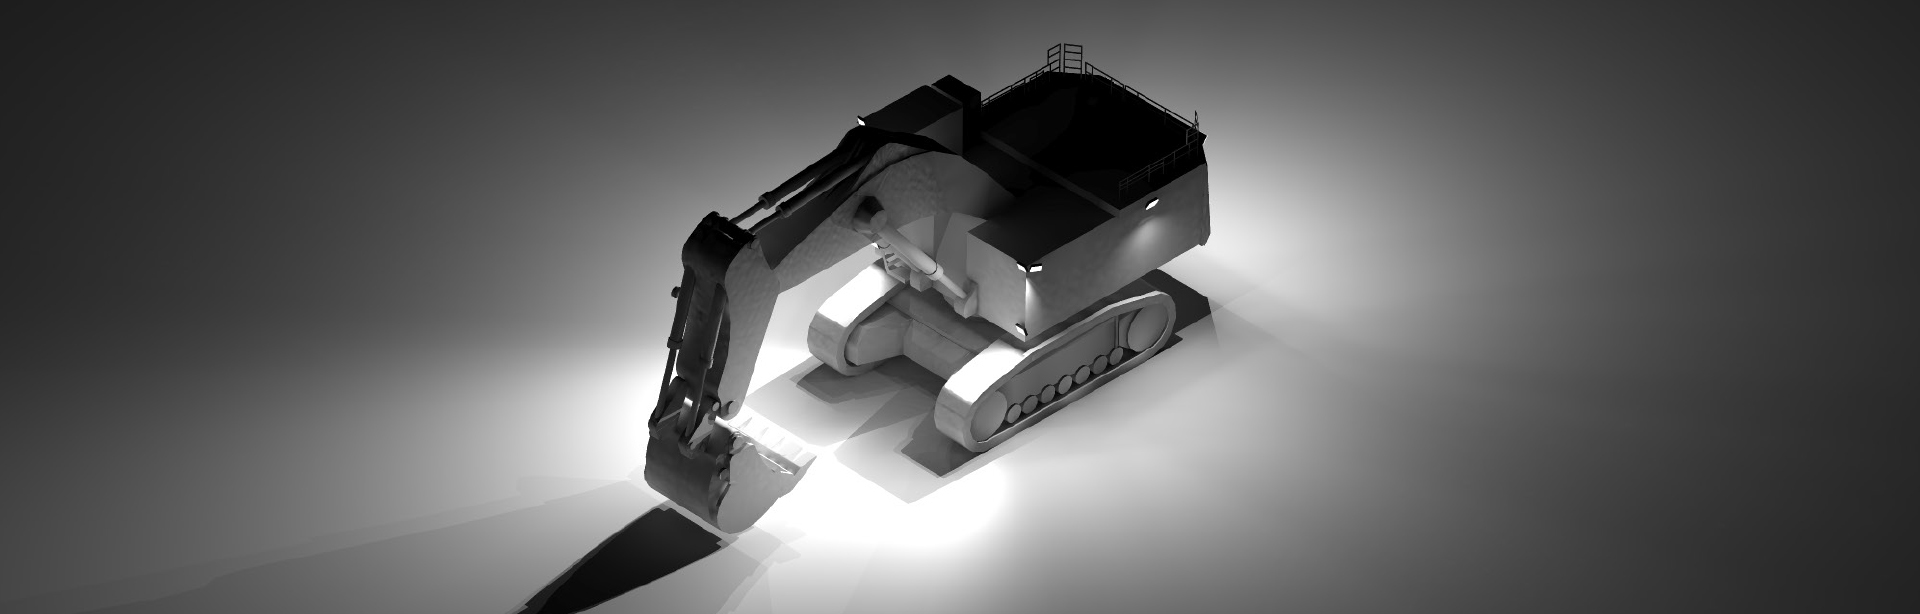 We made this Lighting Design Simulation Report to illustrate how CP9 LED Floodlight boosts the light output of a Liebherr R996 mining excavator.